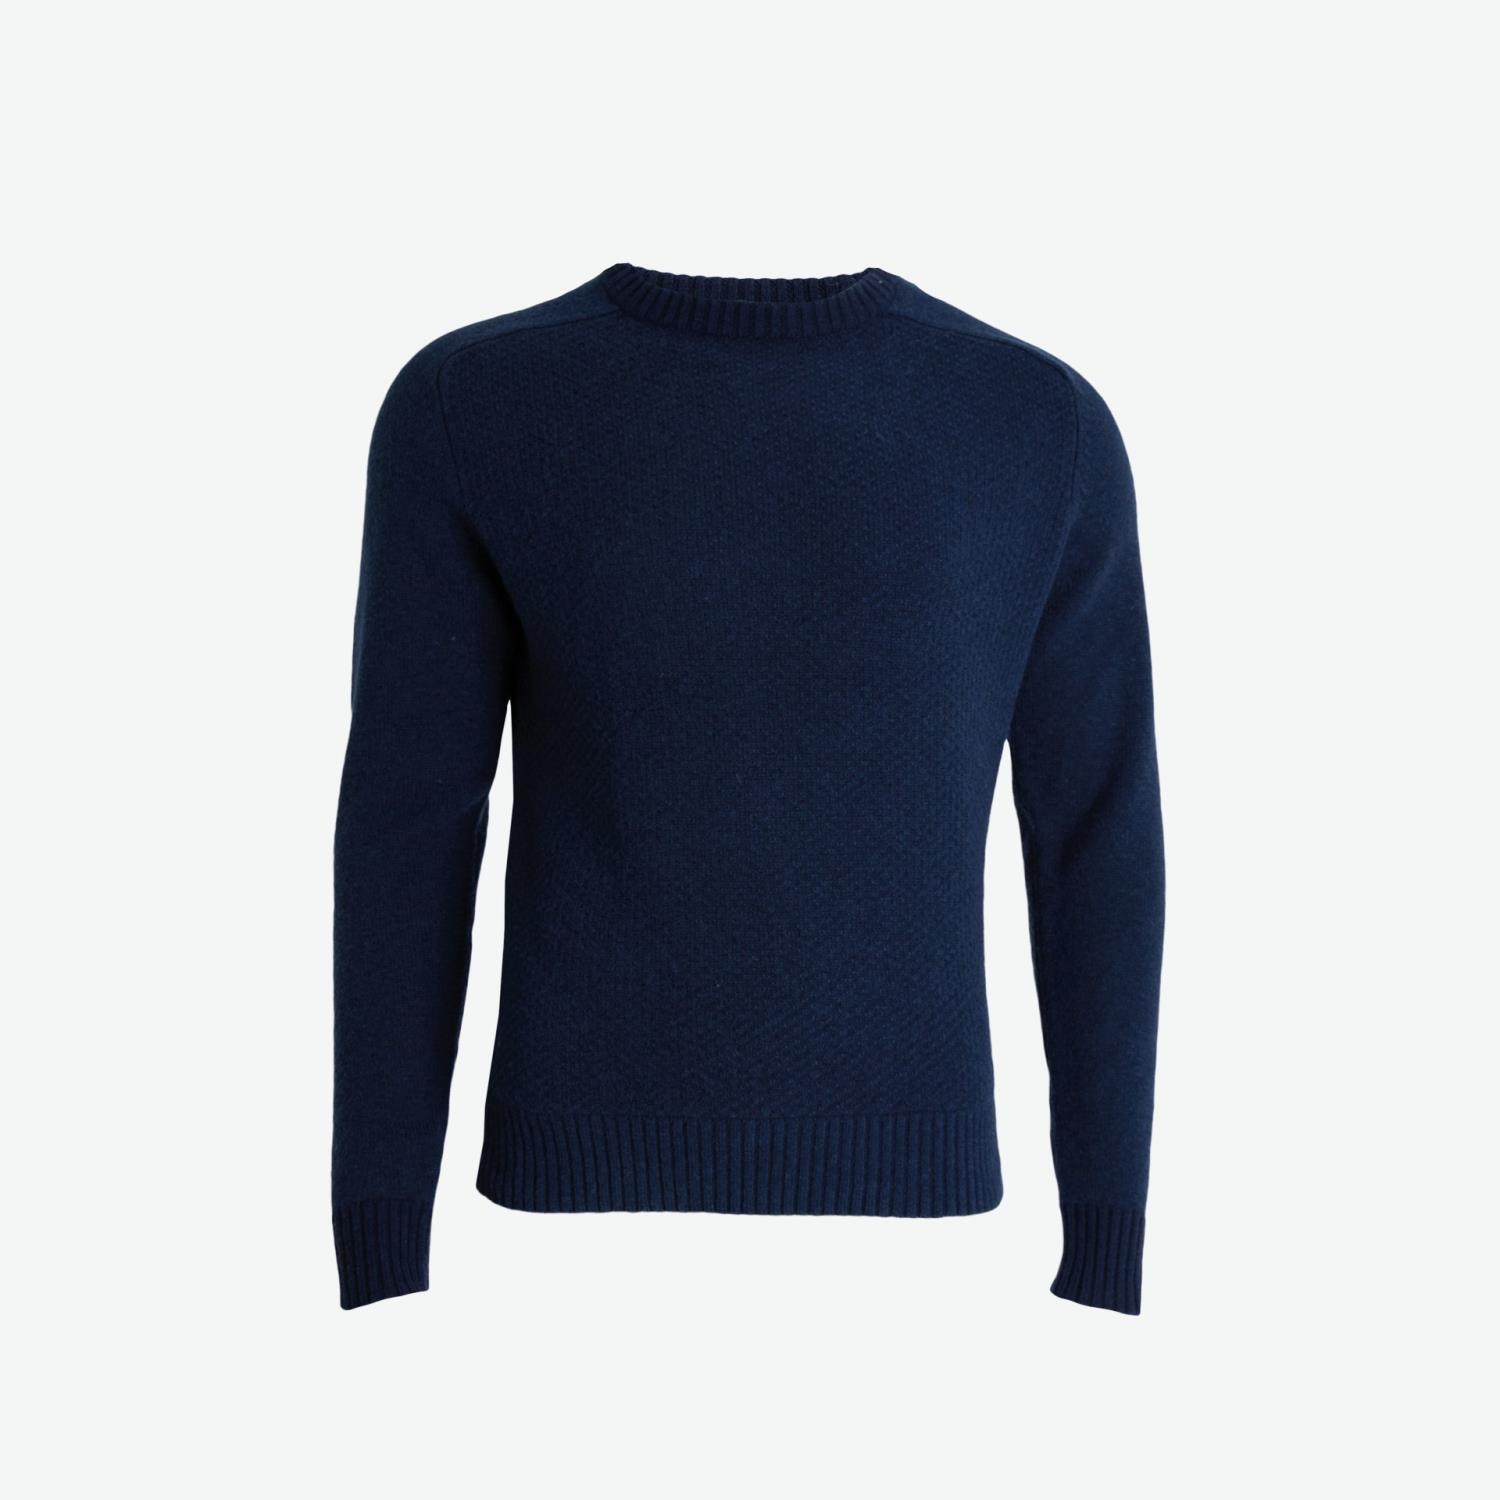 Tufte Wear  Unisex Bambull Blend Sweater